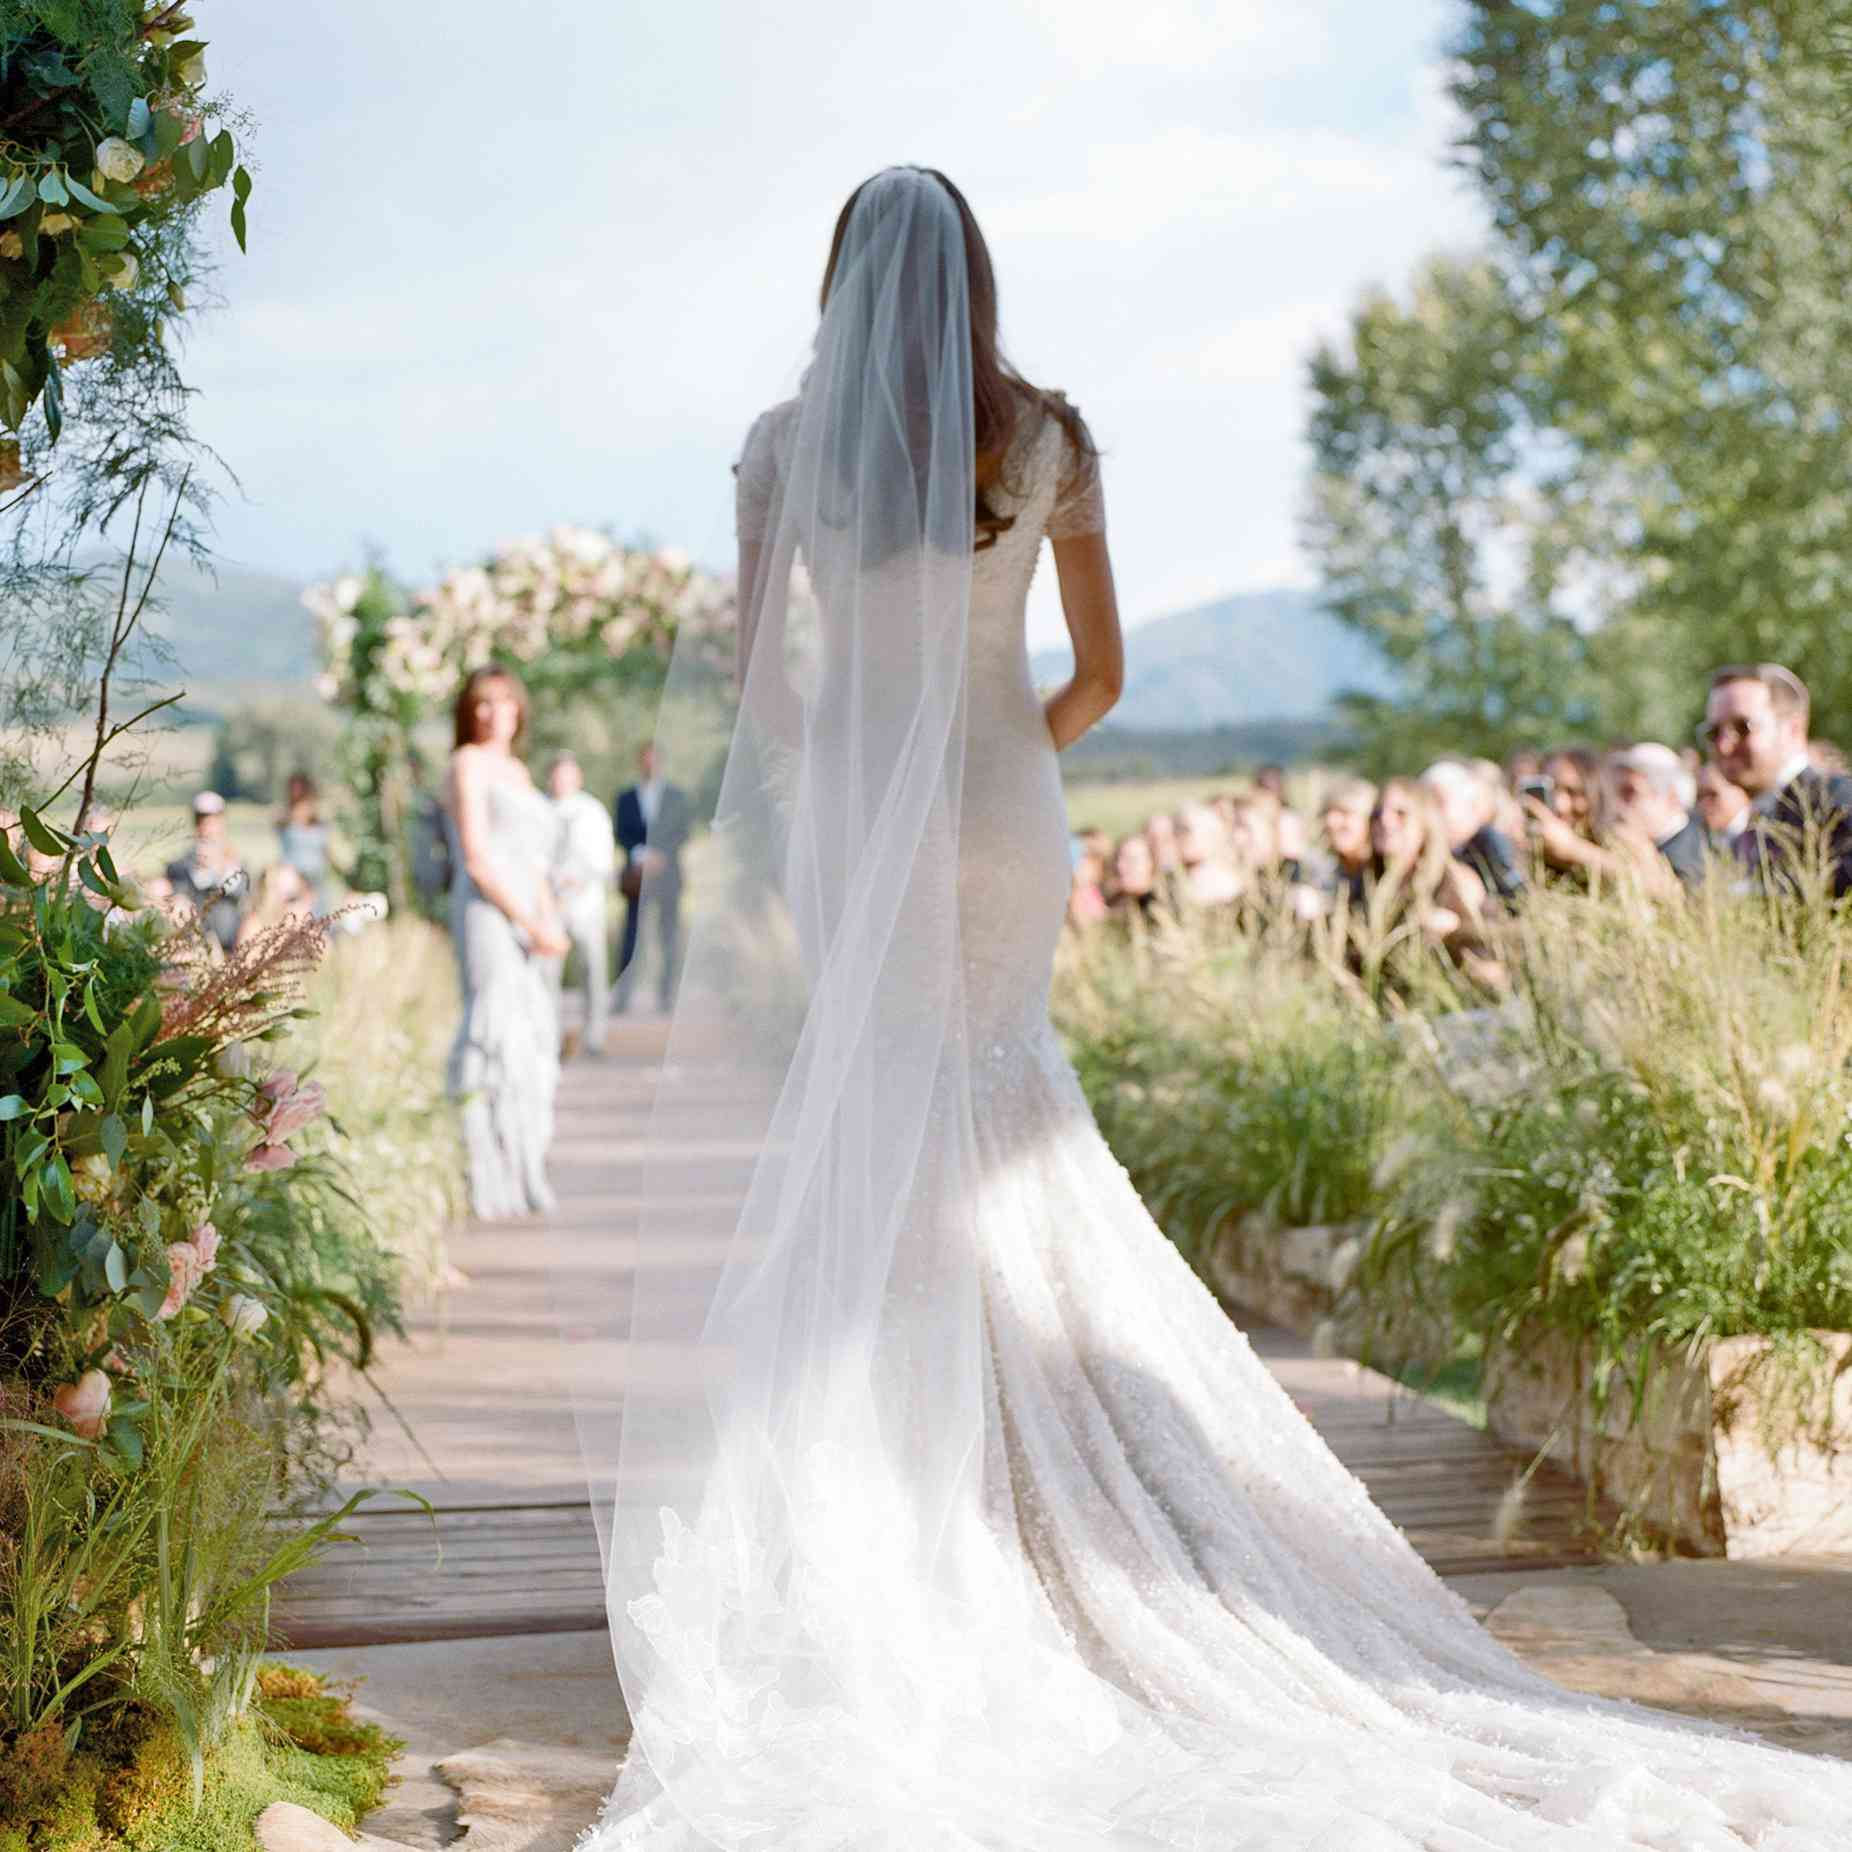 Wedding Walking In Songs: 10 Unique Ways To Walk Down The Aisle At Your Wedding